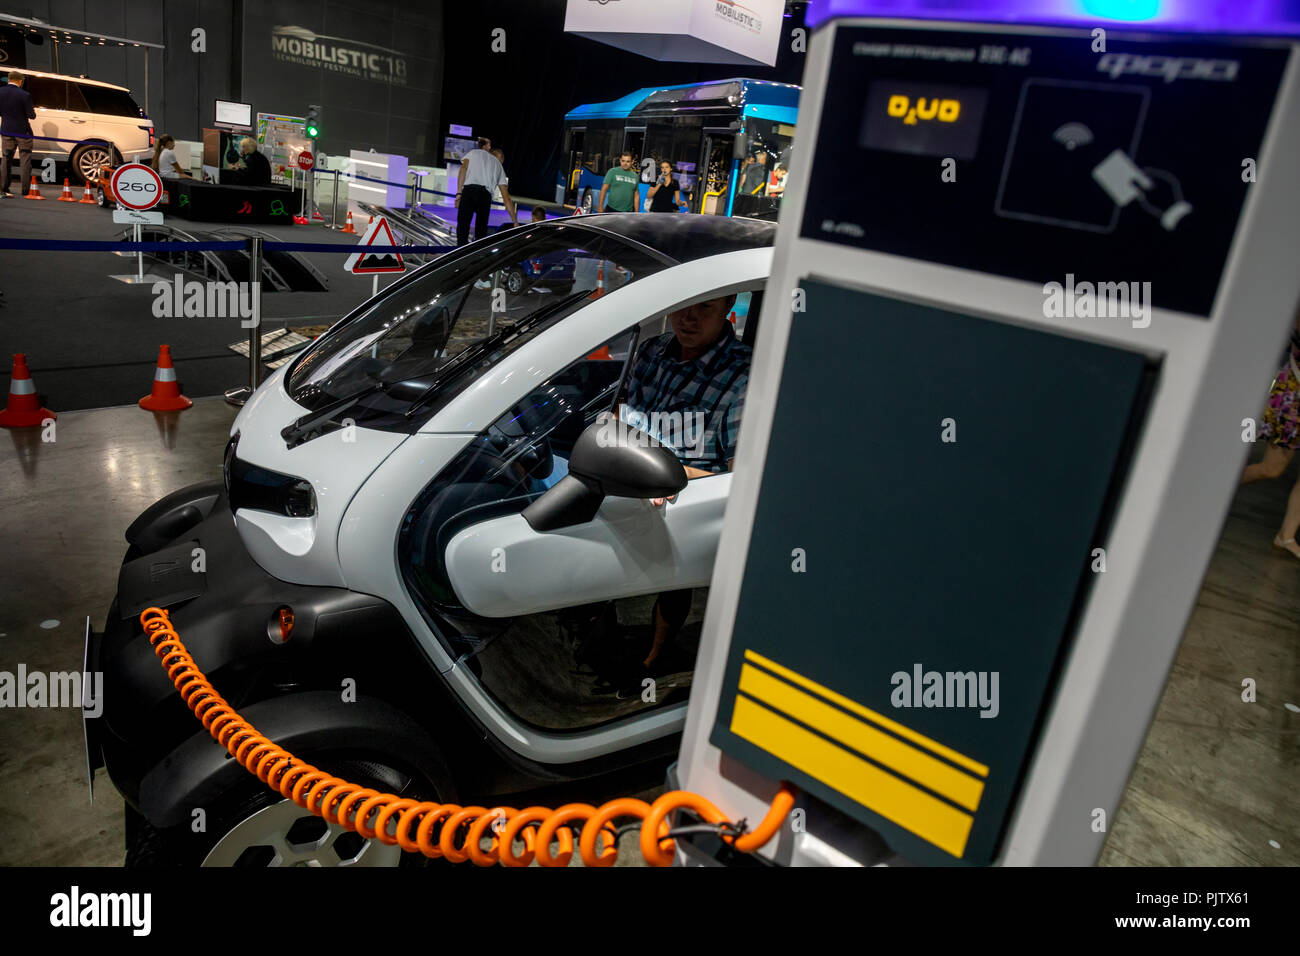 A new electric car Renault Twizy is charged from the charging station at the technology festival Mobilistic 2018 in Moscow, Russia Stock Photo